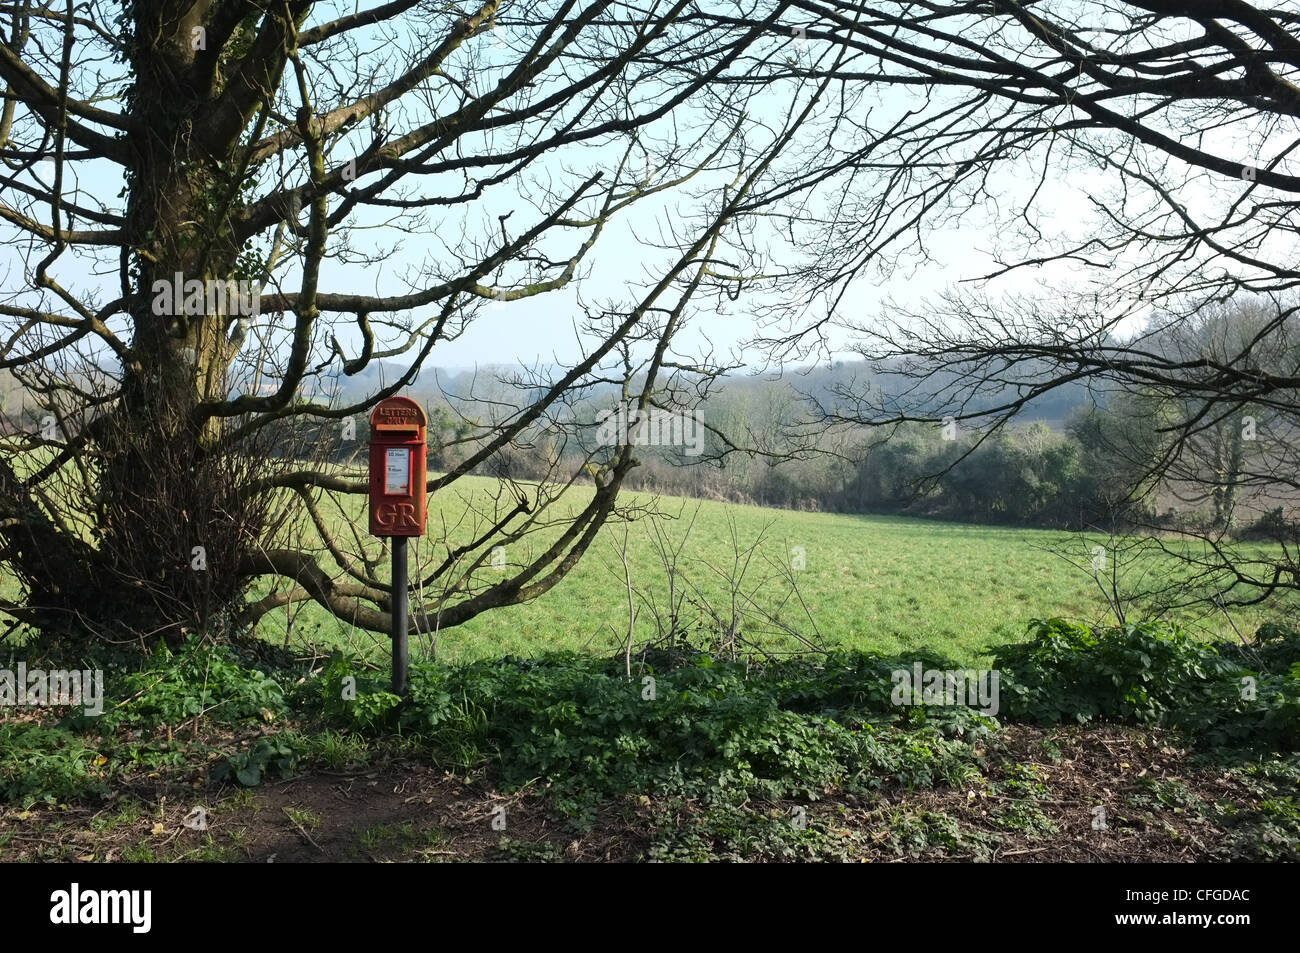 A postbox 2 miles from Falmouth, UK - Stock Image